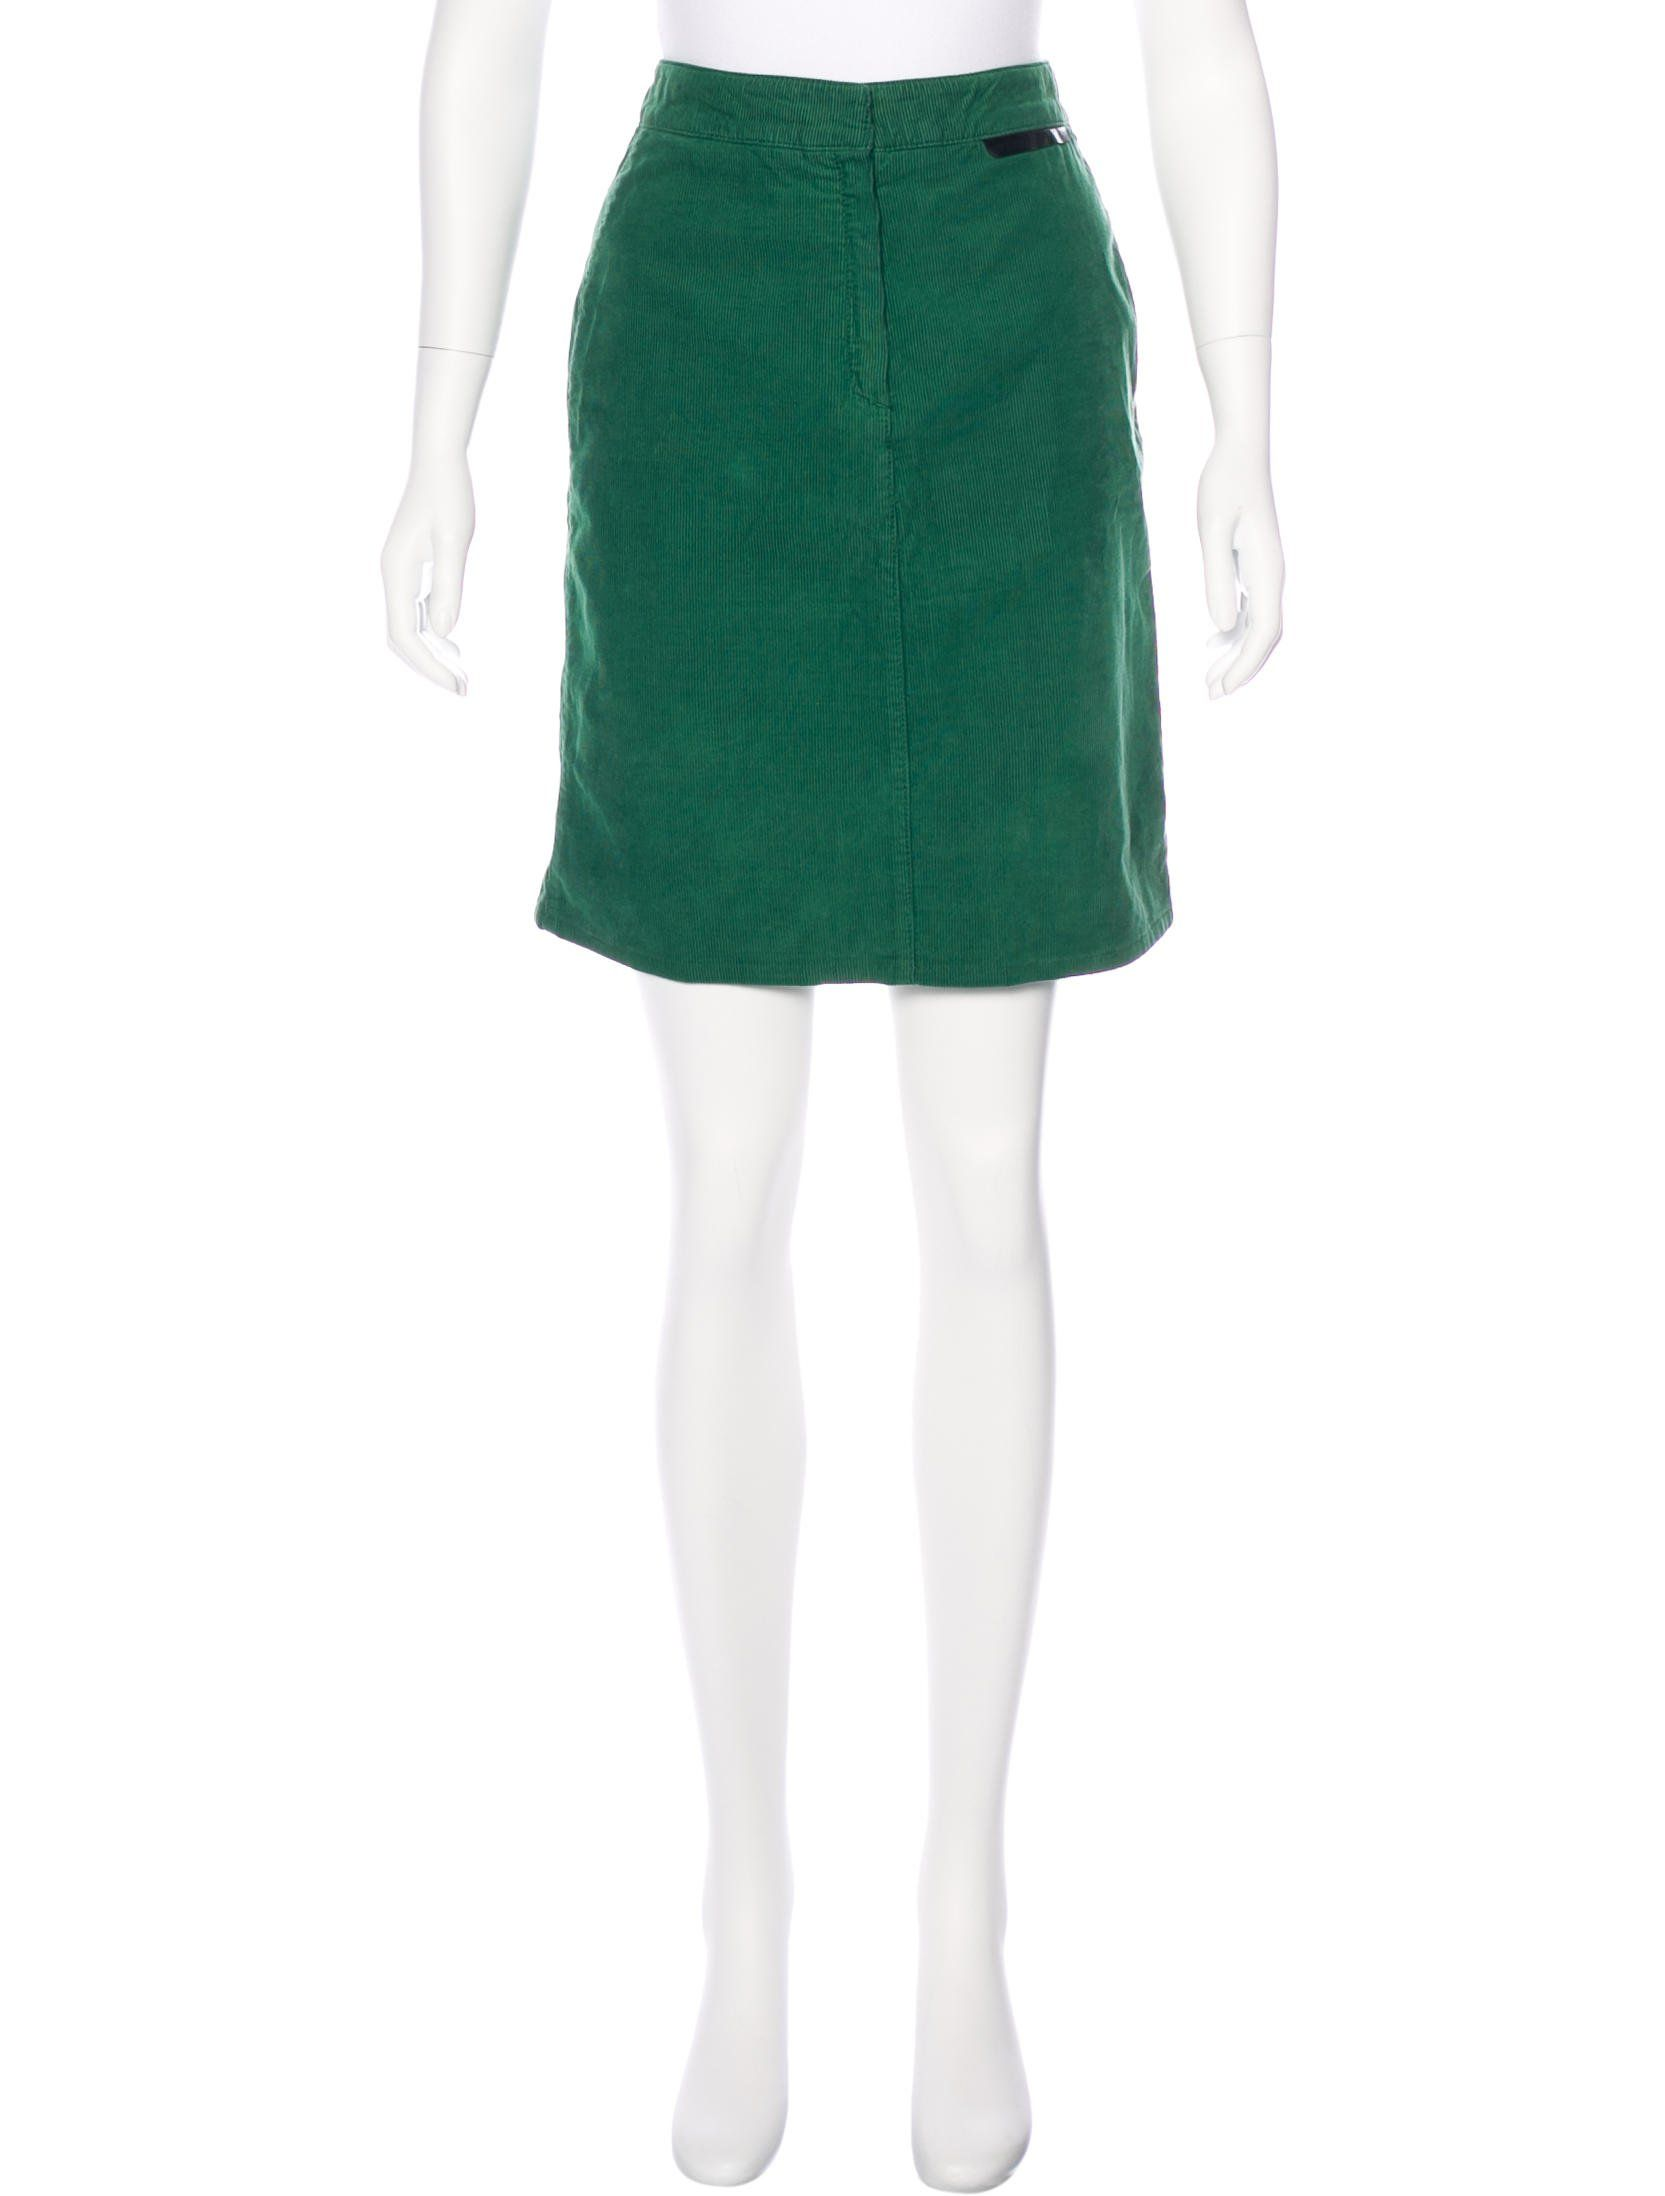 67baac9f04 Emerald green Stella McCartney corduroy knee-length skirt with tonal  stitching throughout, dual welt pockets at back and concealed zip closure  at front.